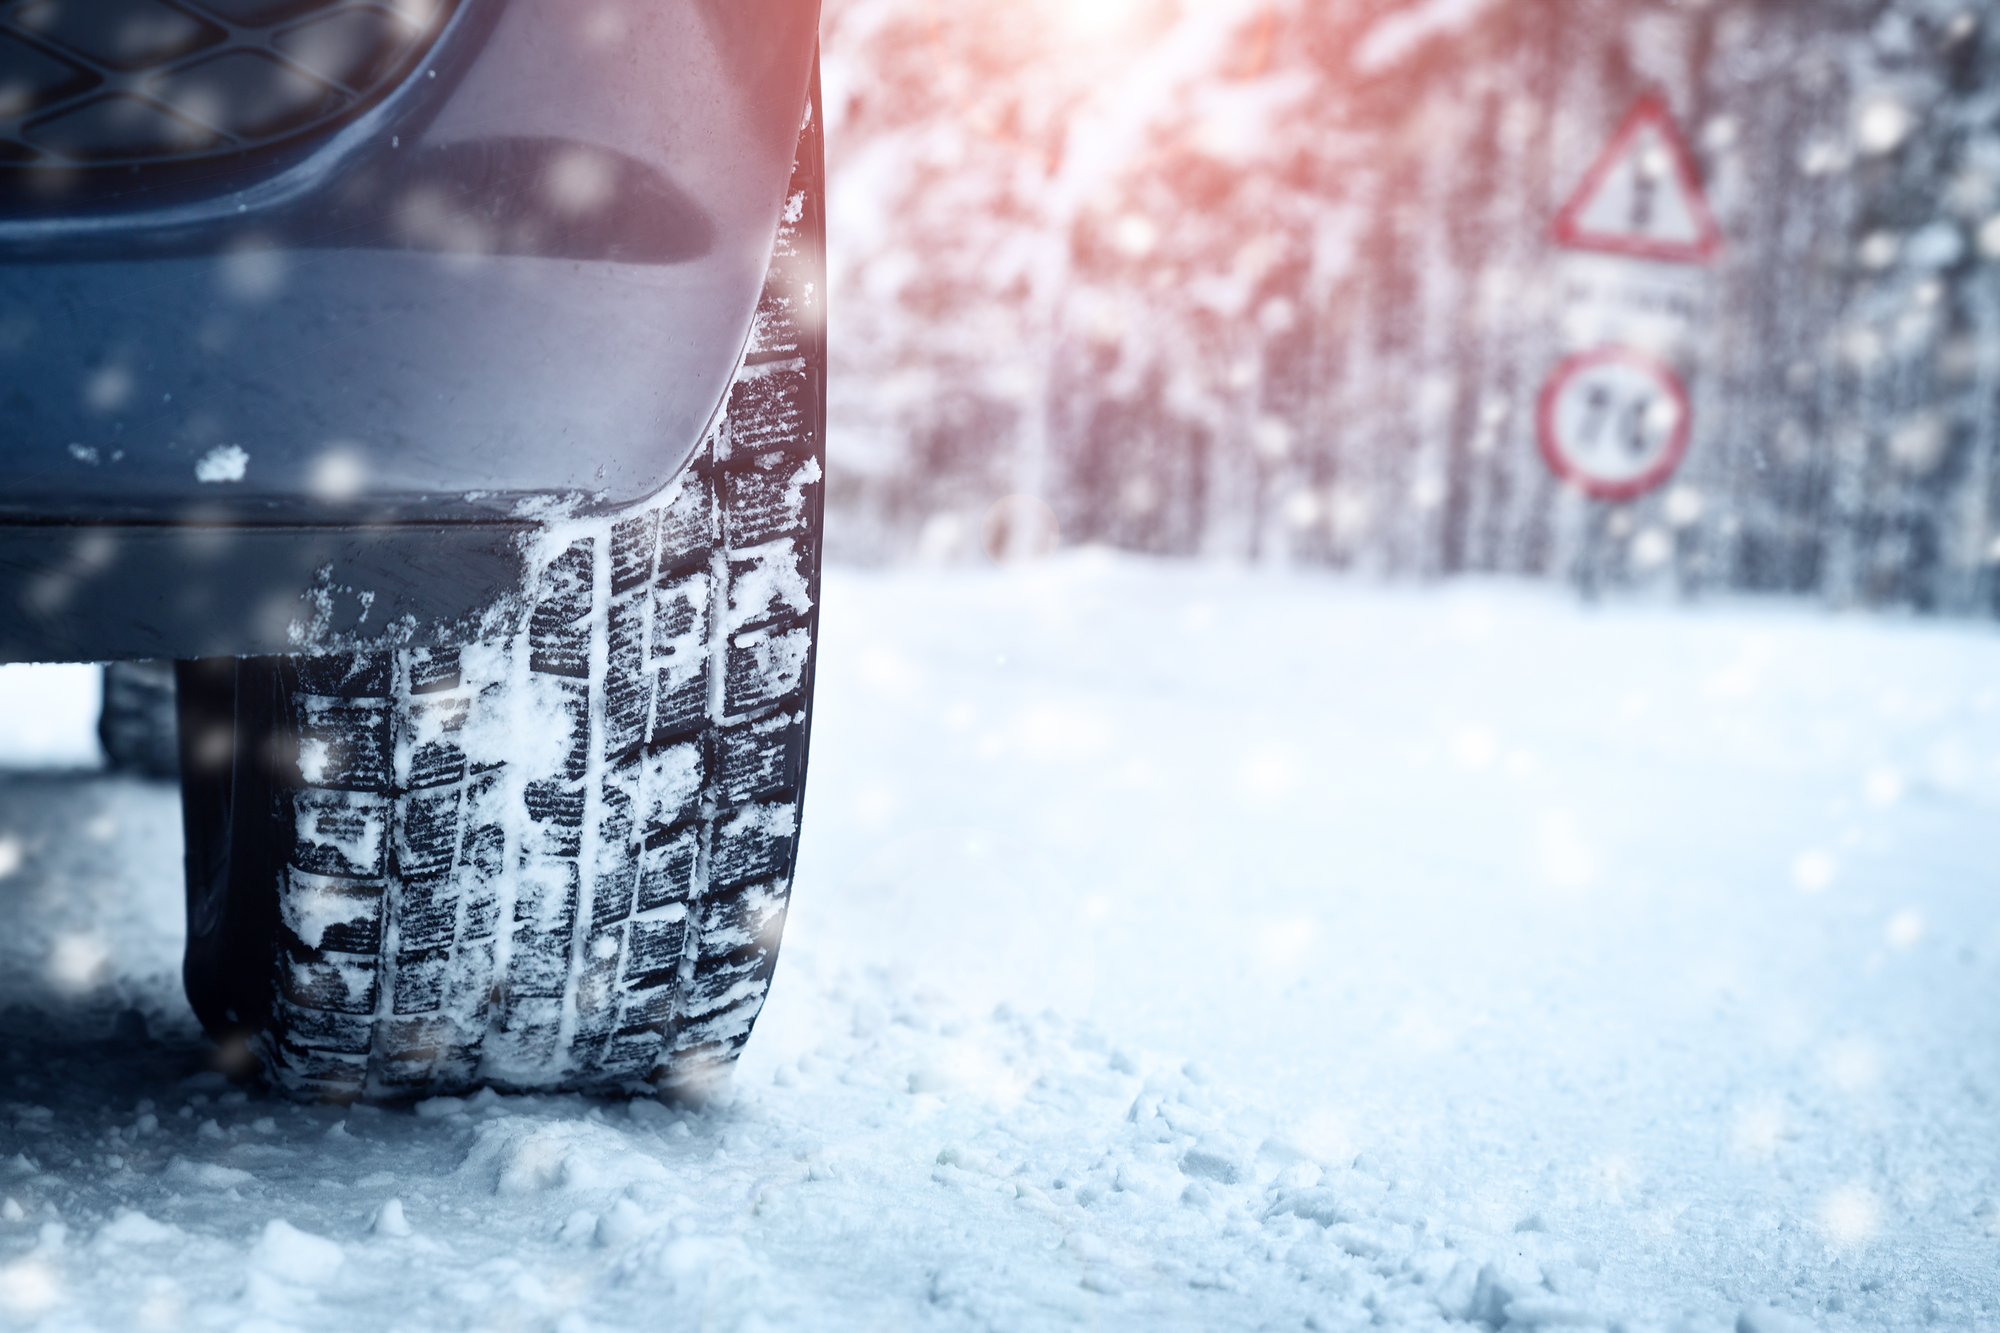 winter tires on a snow-covered road